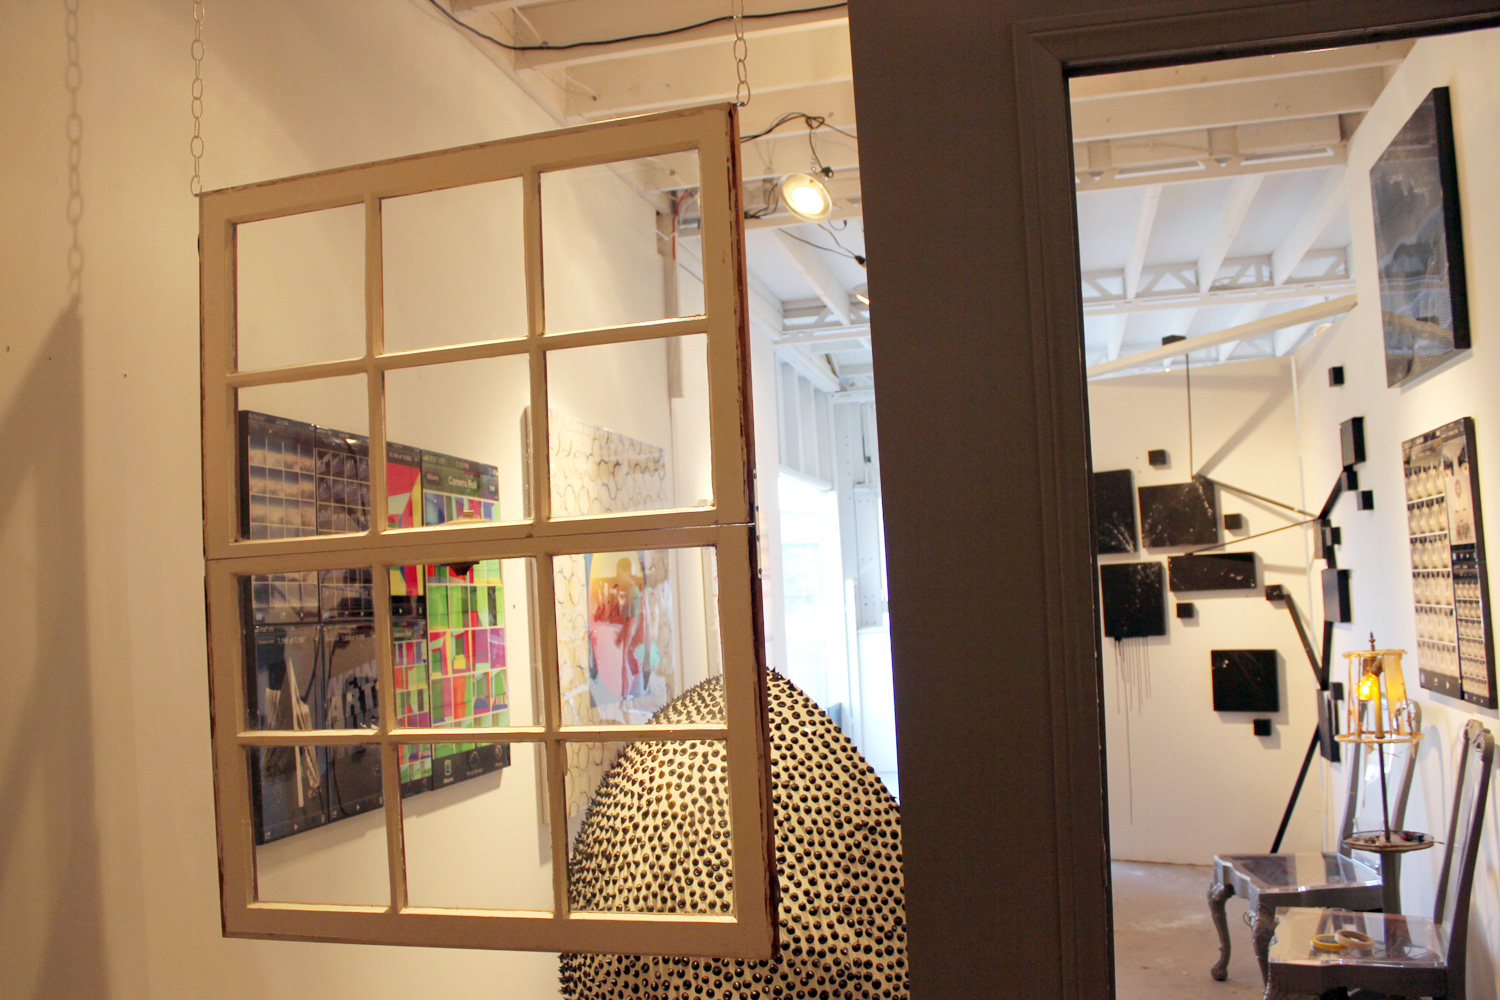 Budman's hanging wall installation at the WNDO gallery on display now through September 30.